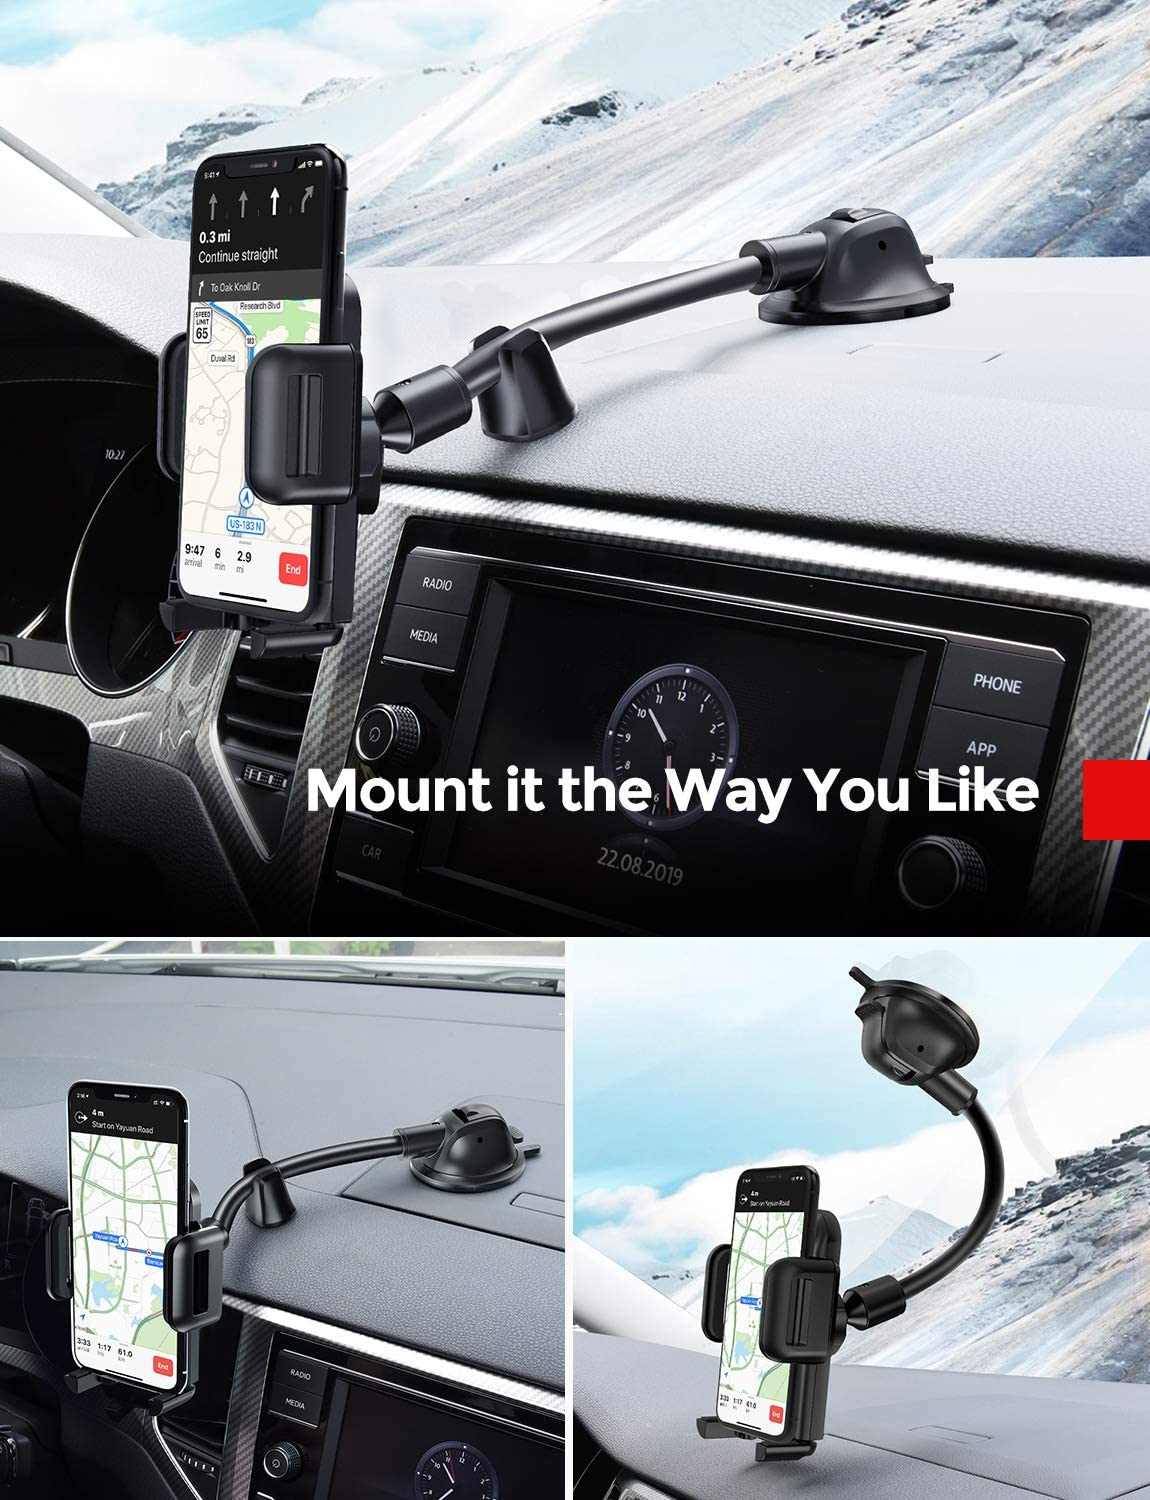 SE 6S 6 7 7 6 5S 4 Samsung S10 9 8 7 6 5 4 LG Huawei GZJ Car Phone Holder,Automatic Induction Car Phone Mount Compatible with iPhone Xs XS Max XR X 8 8